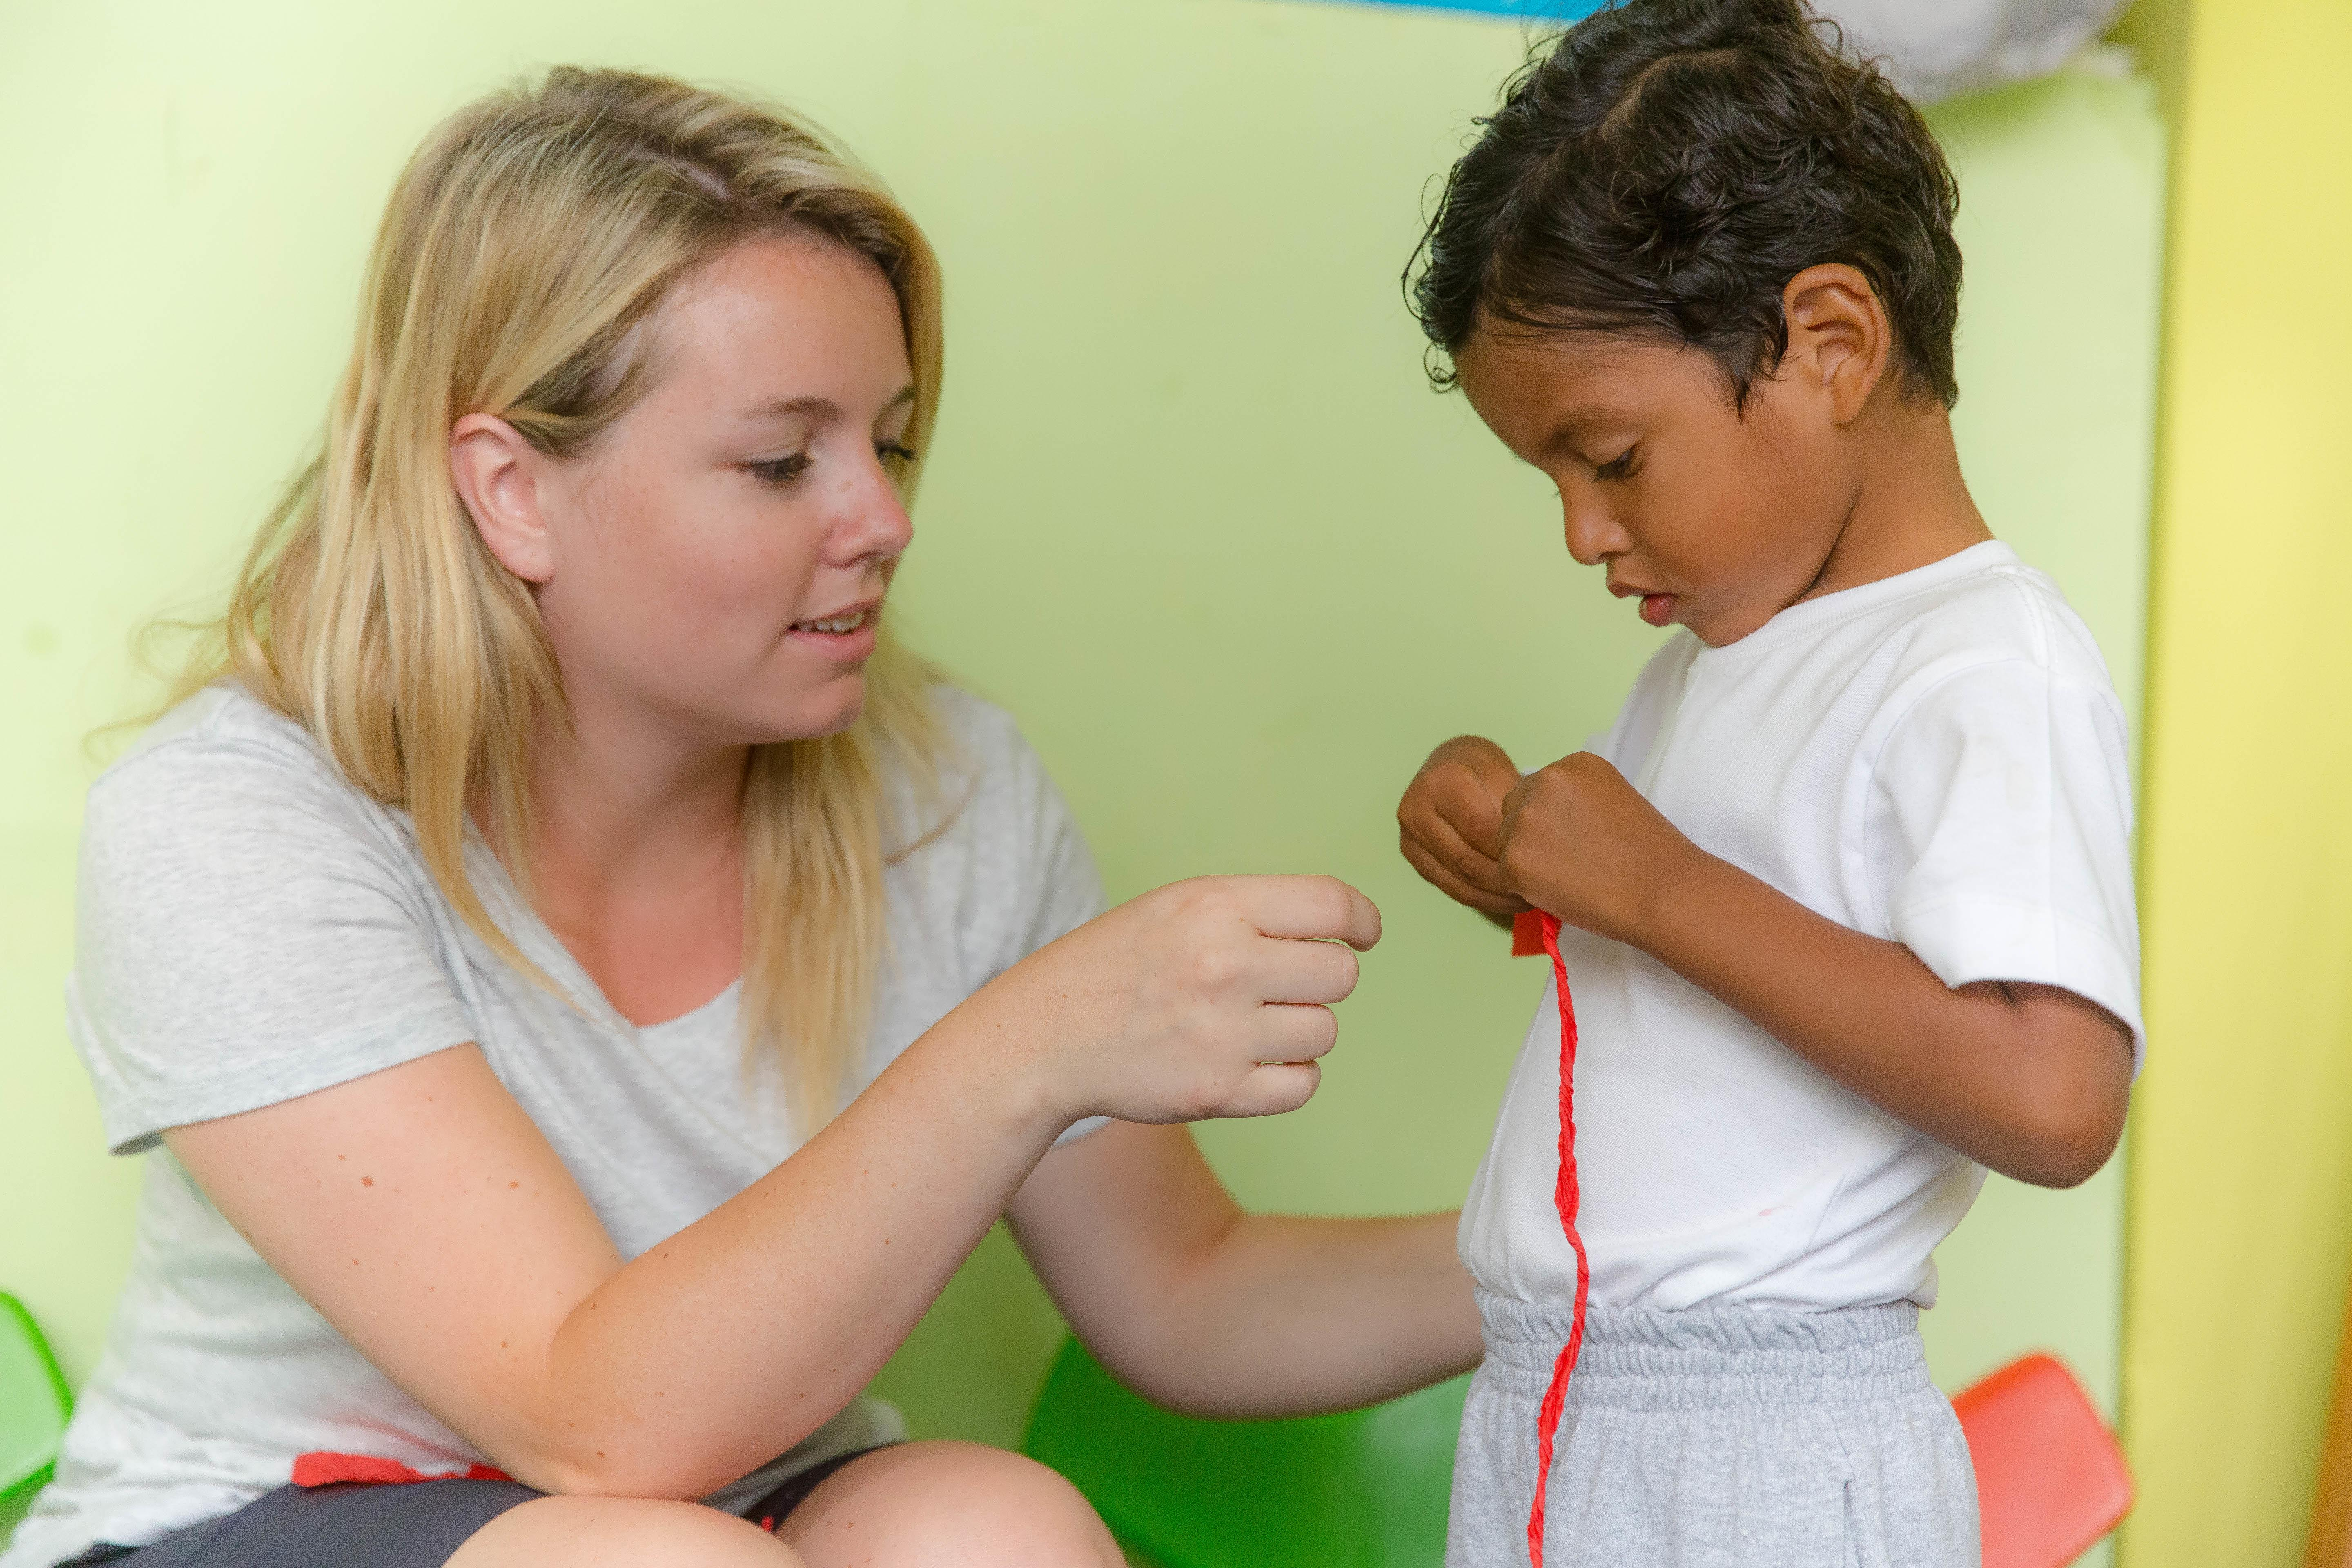 Projects Abroad volunteer working with children in Ecuador helps child with an activity in a day care centre.